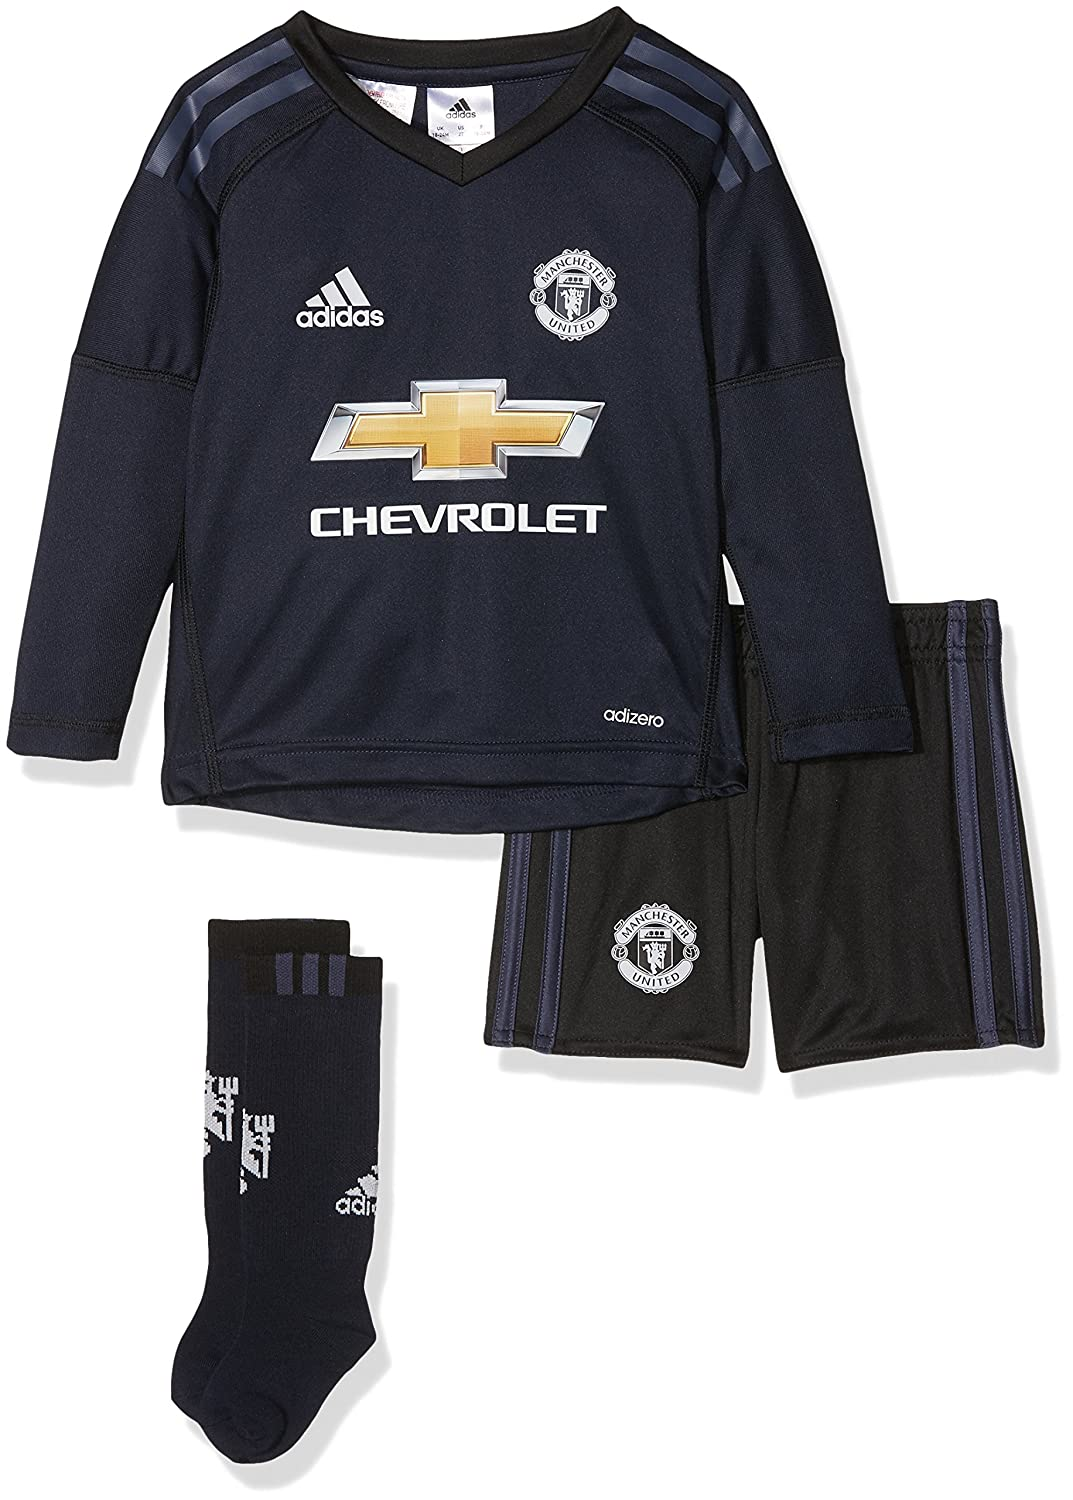 ADIDAS Kinder Manchester United Torwart Mini-heimausrüstung Kit